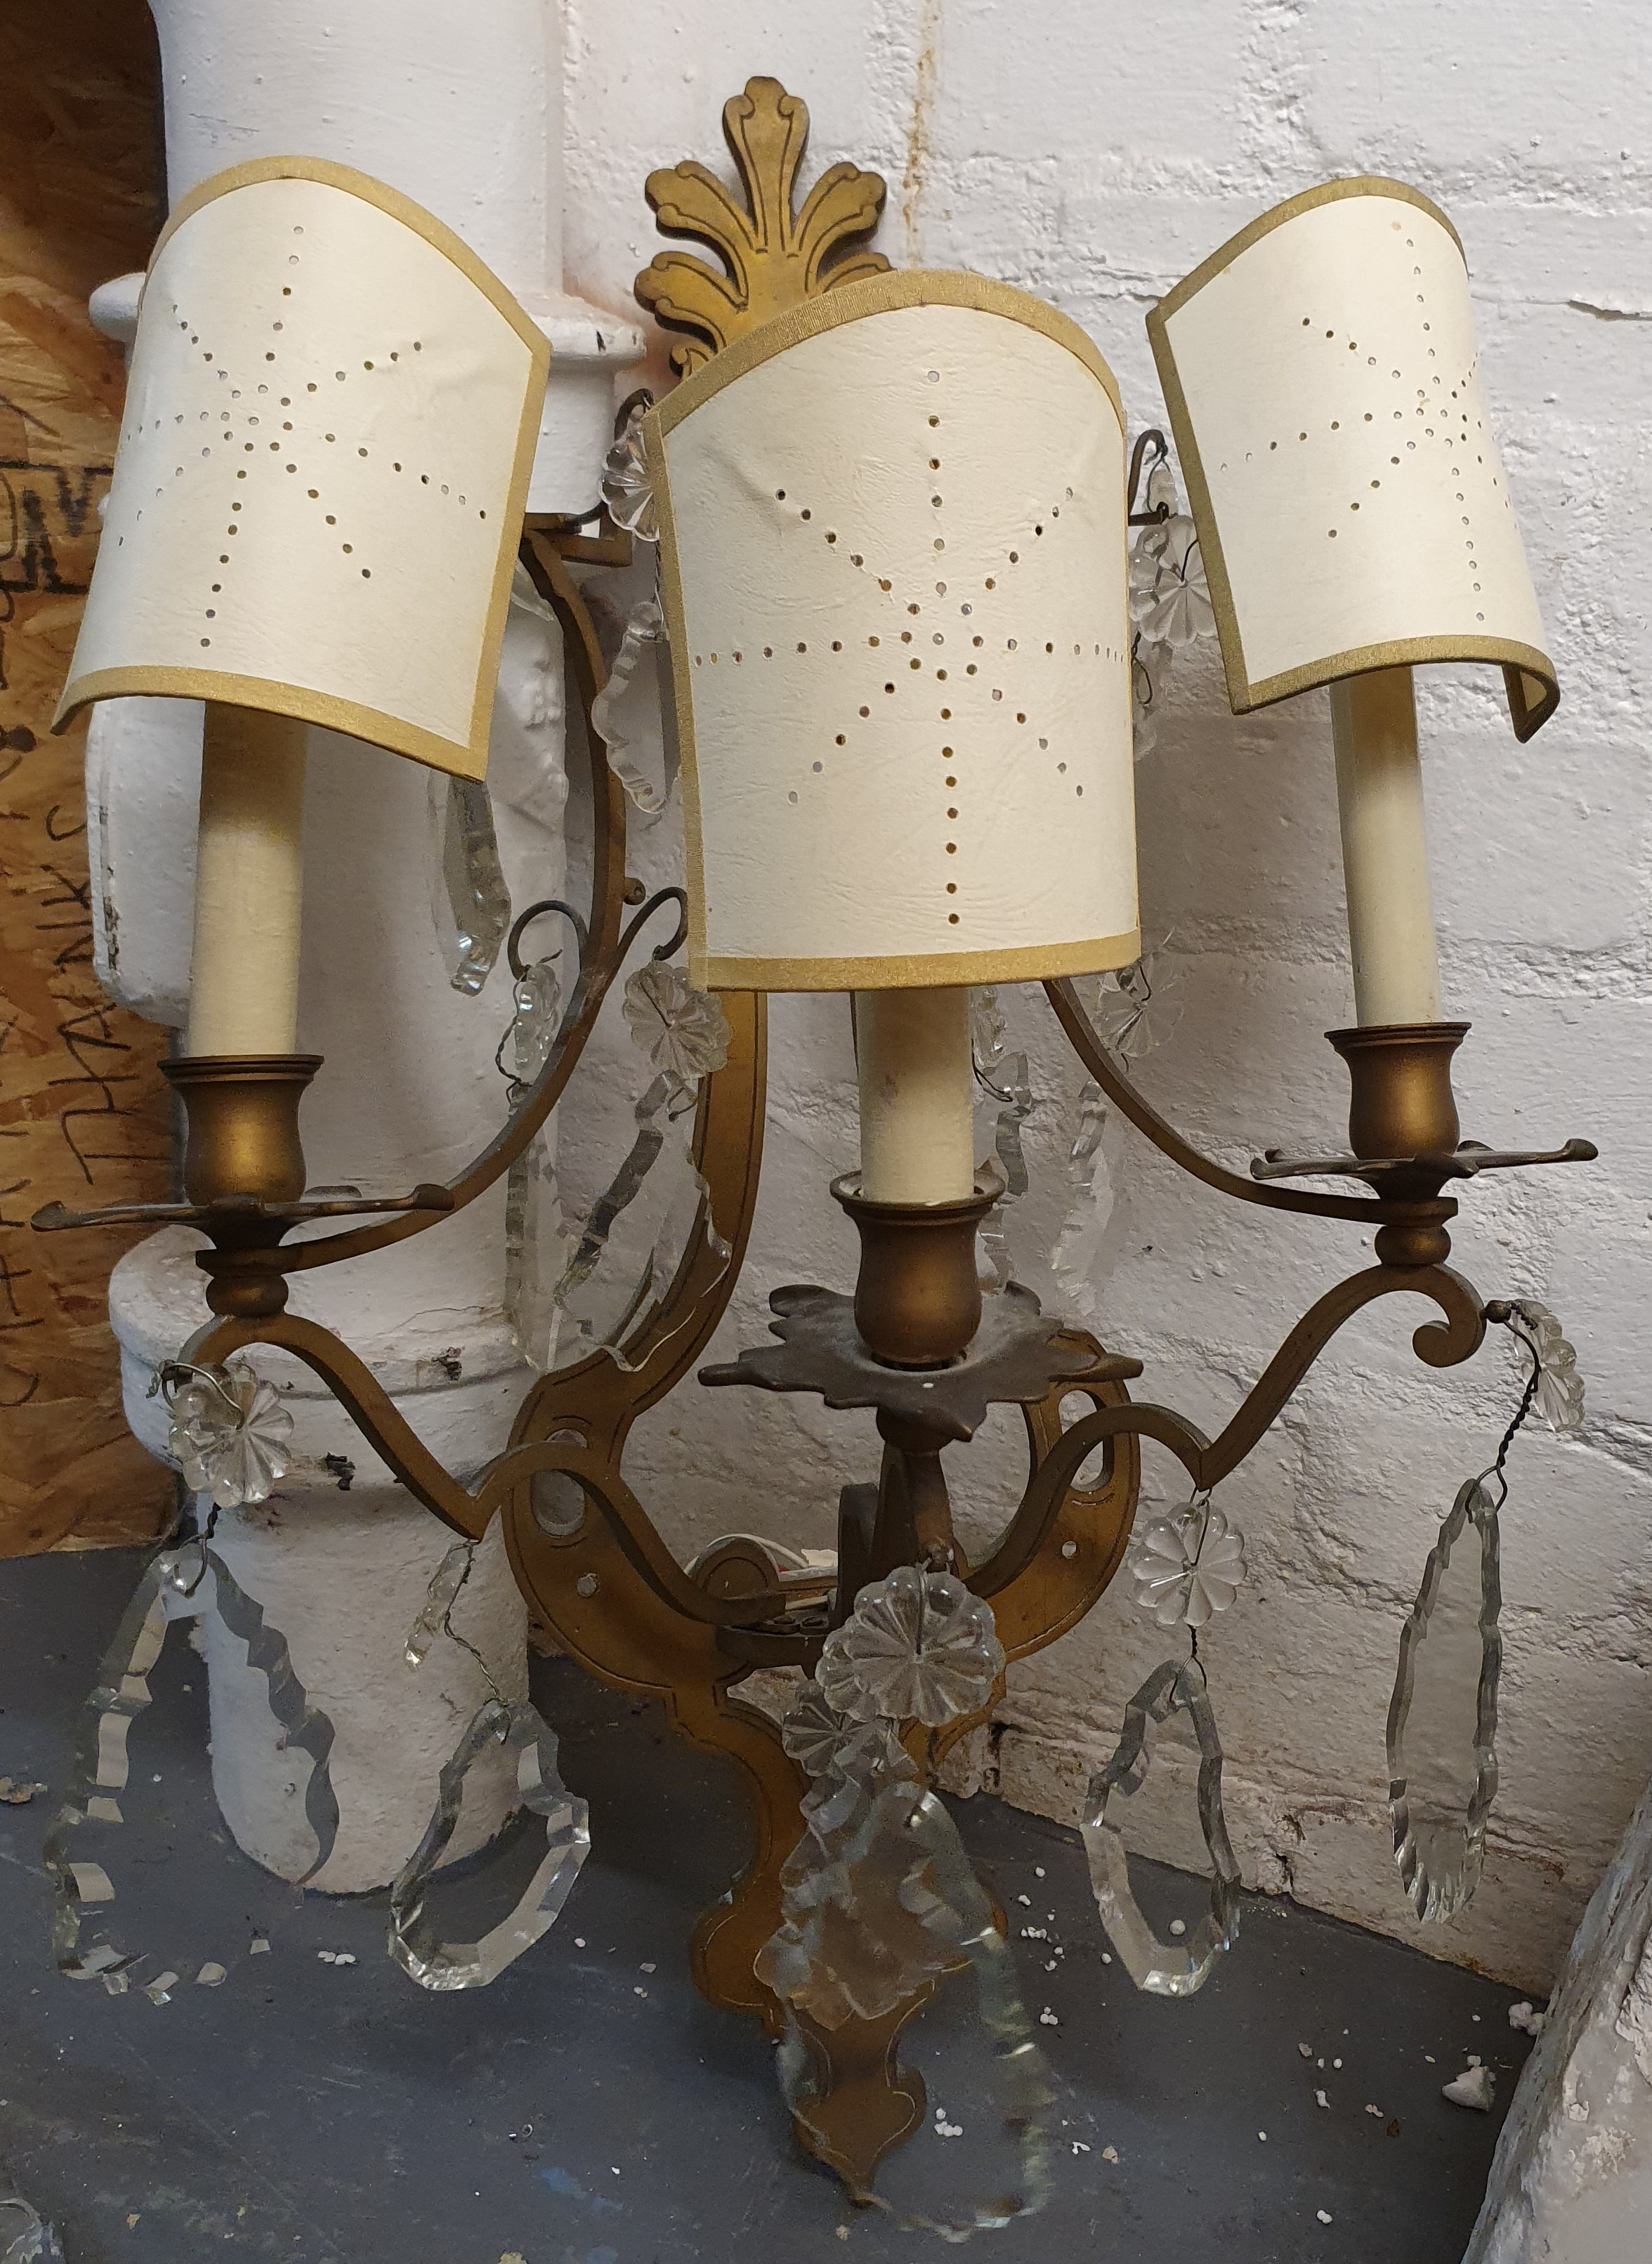 A PAIR OF FRENCH ORMOLU WALL SCONCES, LATE 19TH/ EARLY 20TH CENTURY